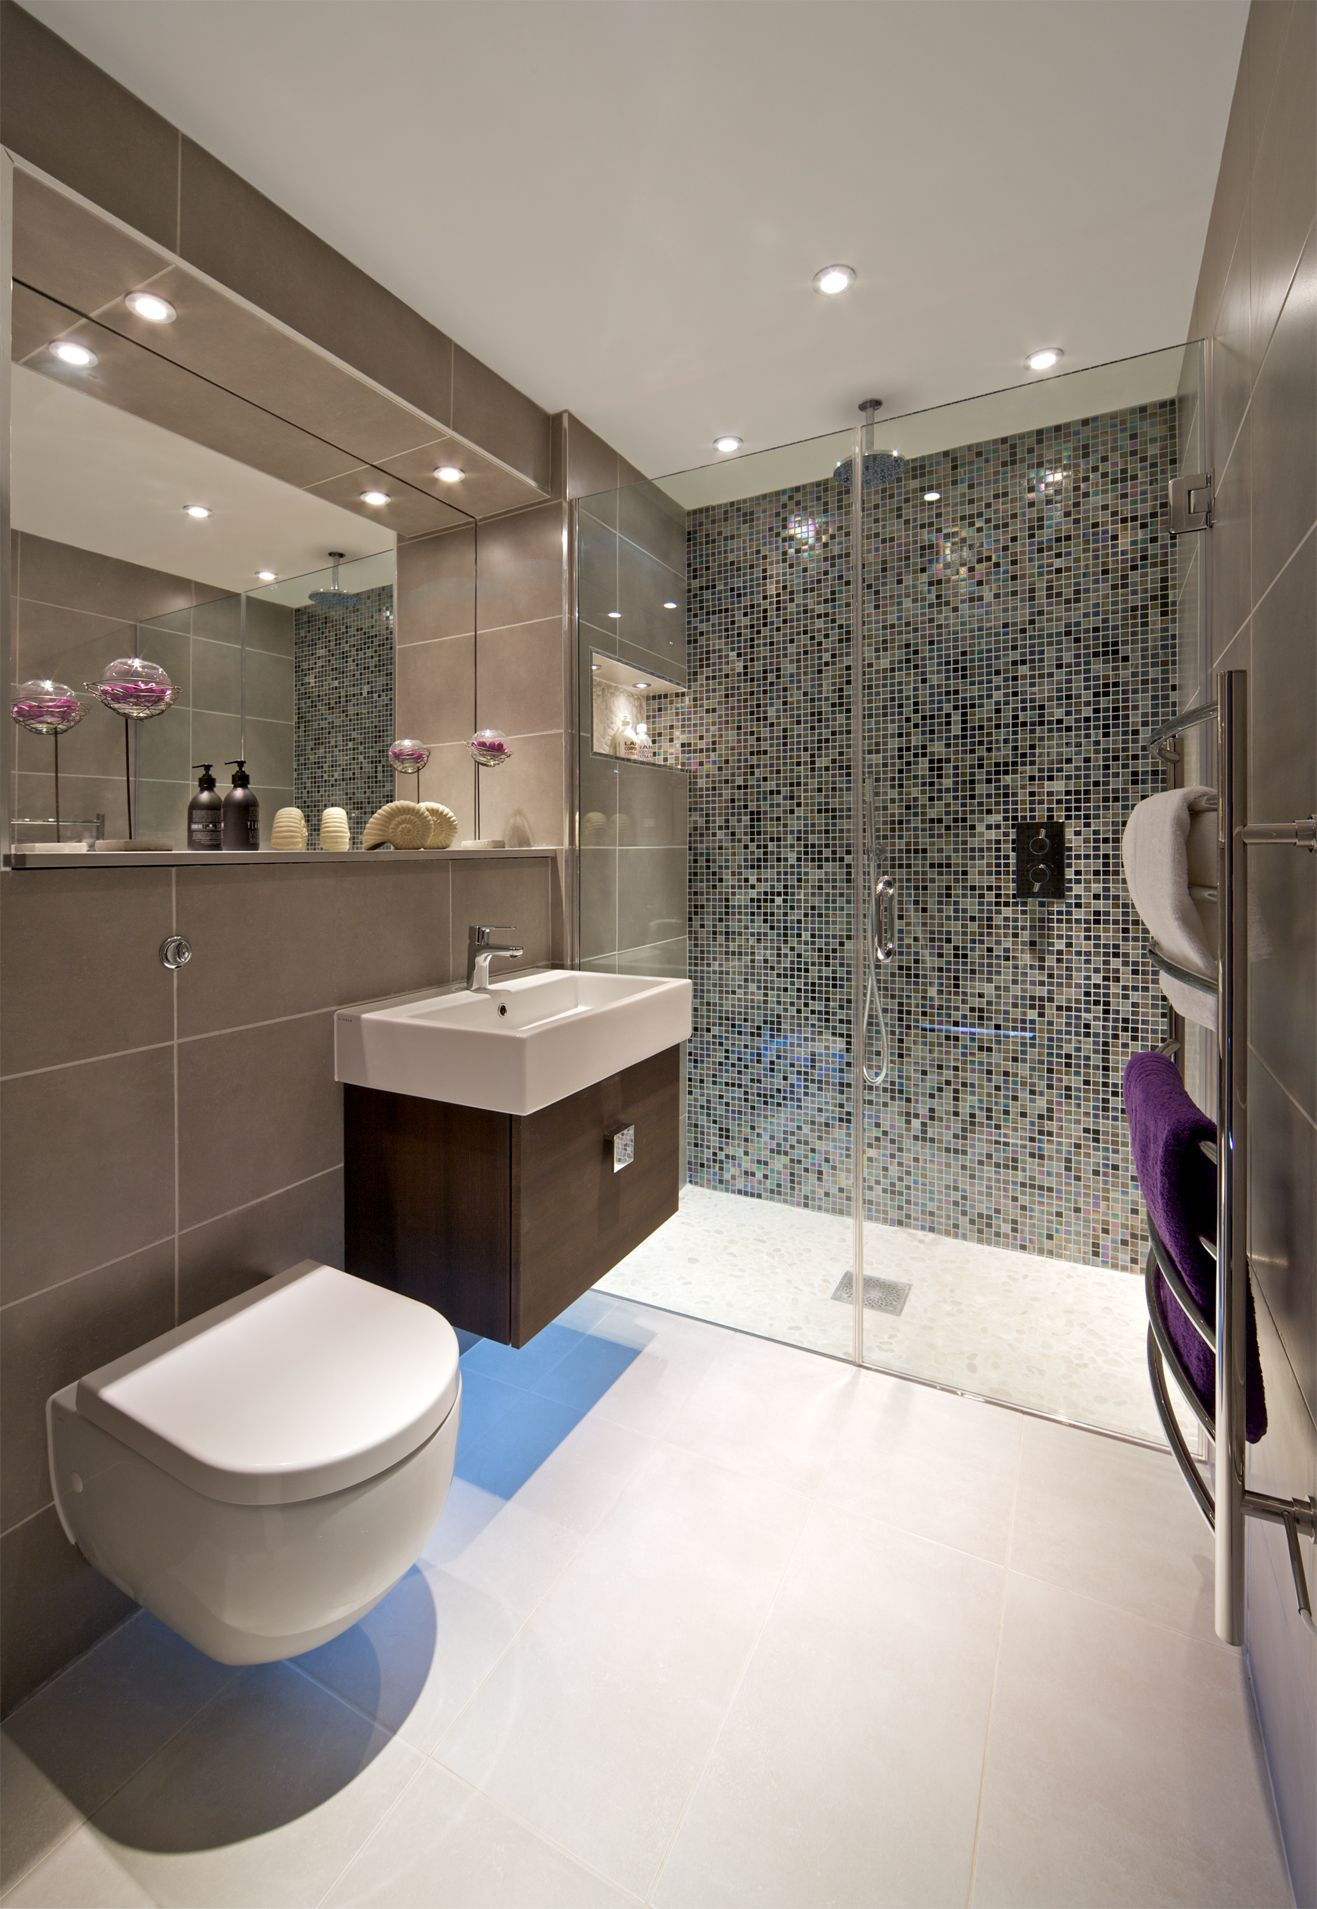 ensuite shower room with mosaic feature wall wall hung wc and